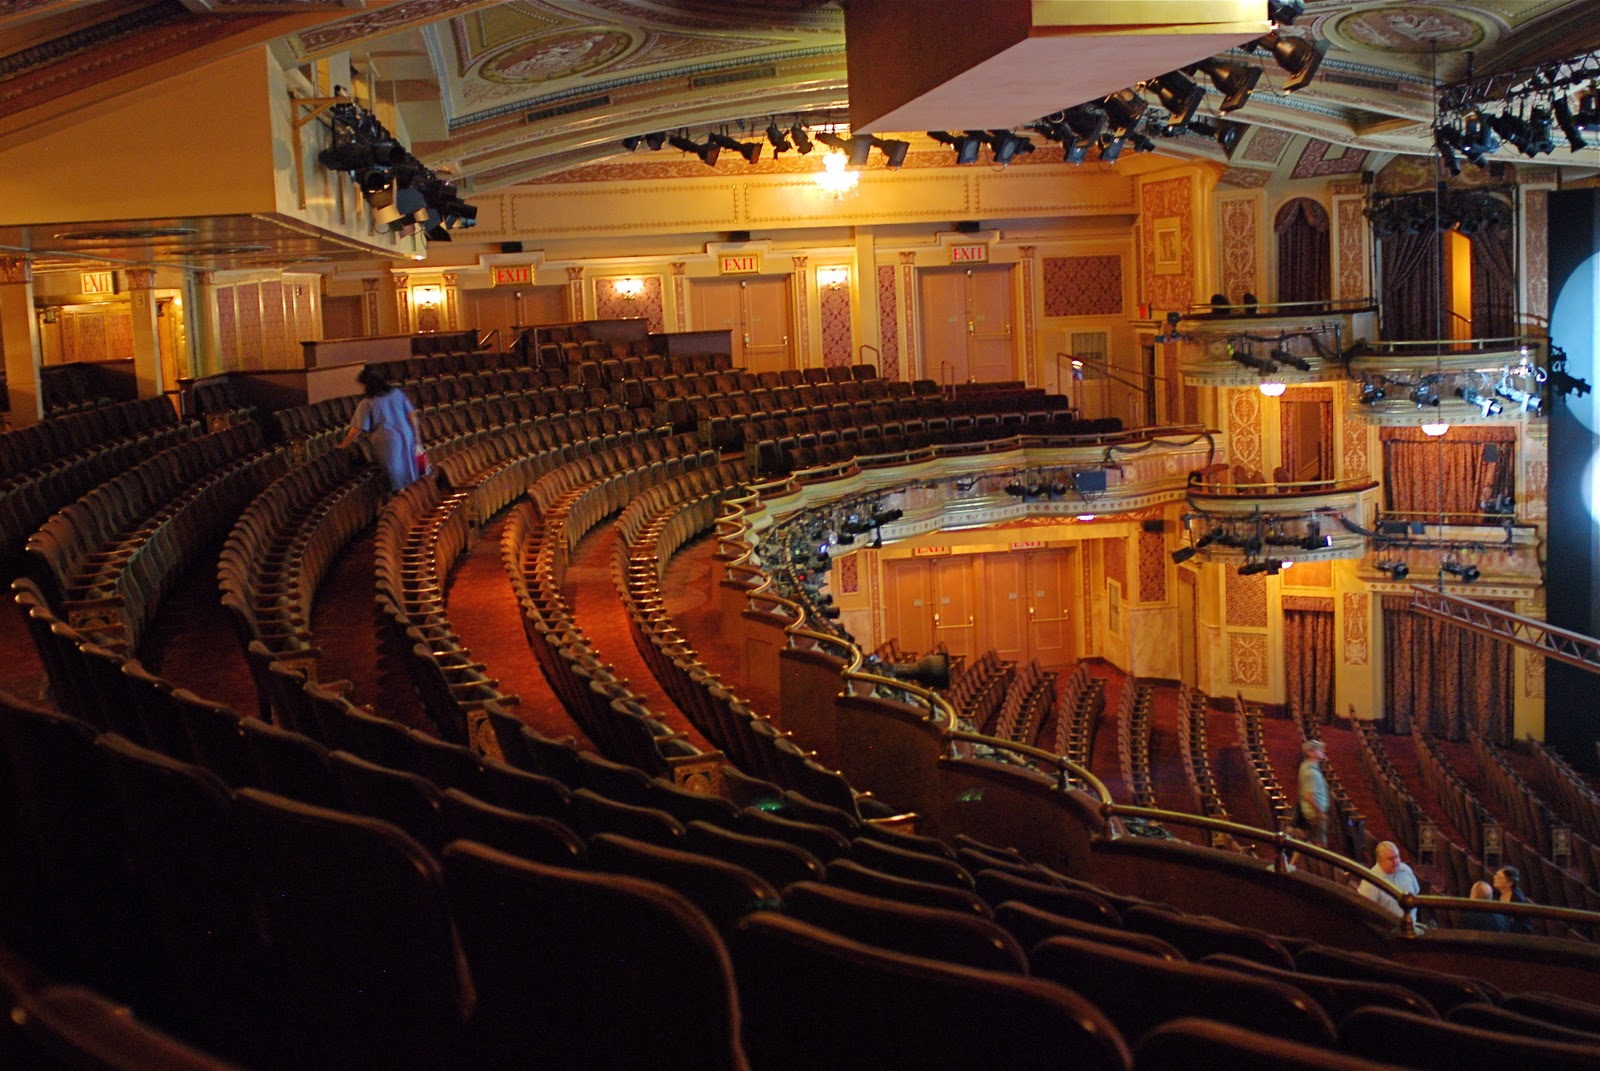 August wilson theatre home of jersey boys also nyc broadway open house tours winter garden mamma rh nyclovesnycspot